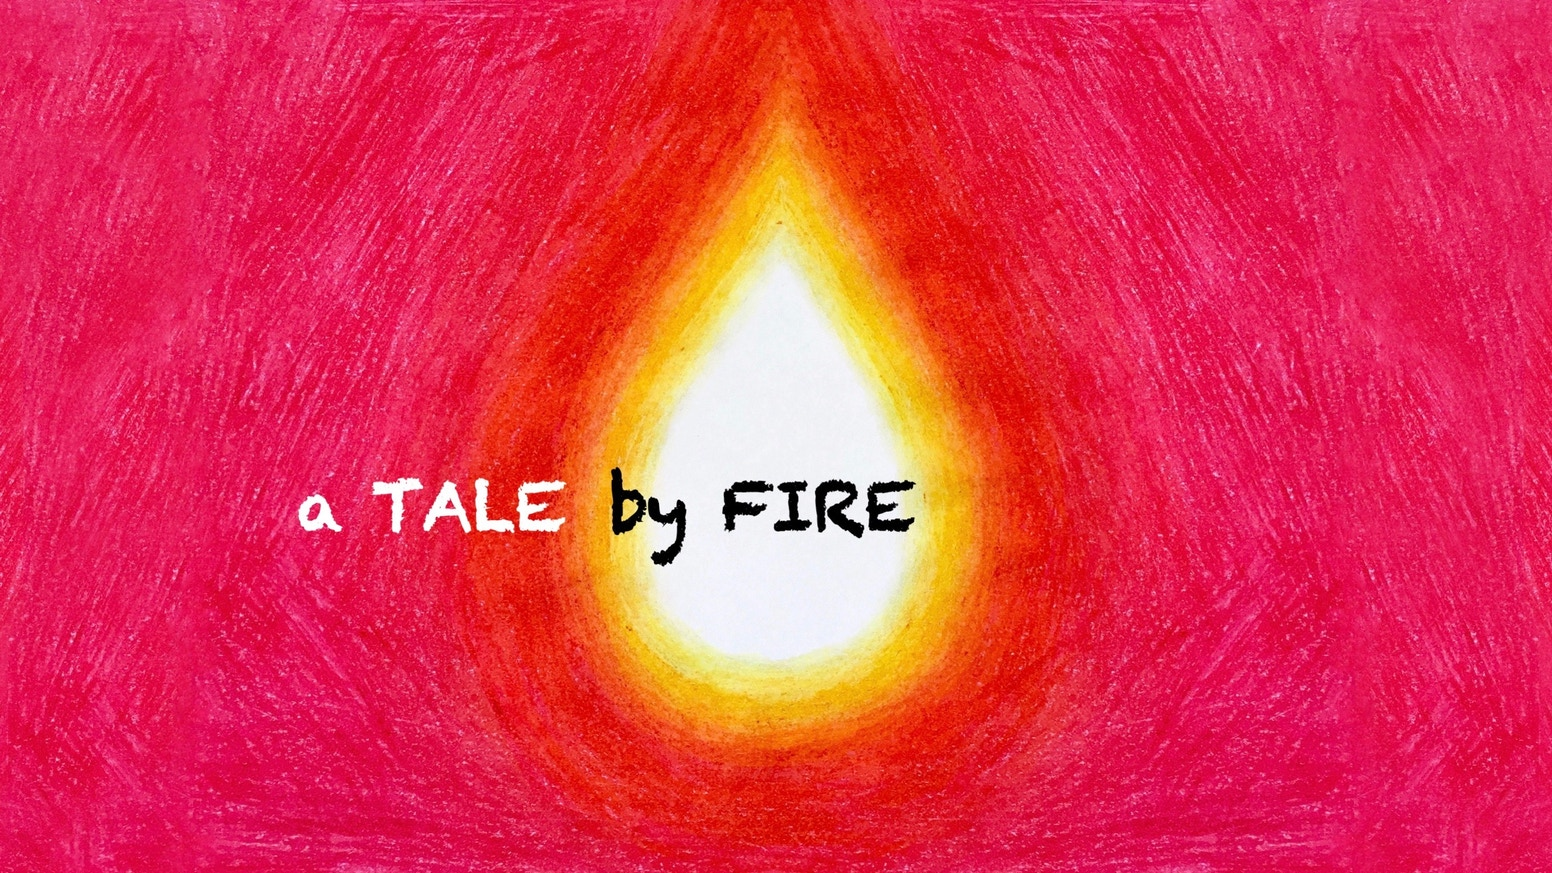 A hand-drawn, meditative journey of fire and light through the ages of history... for the child in all of us.